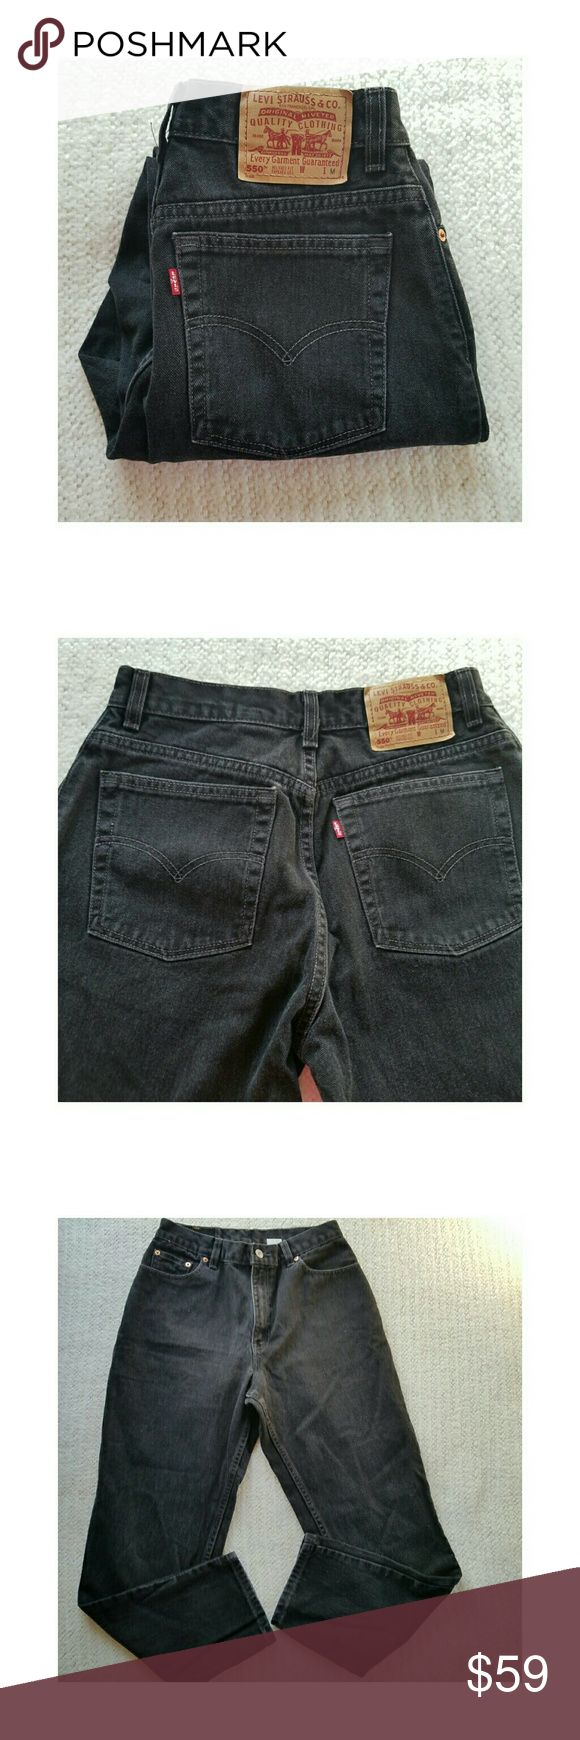 """VINTAGE LEVI'S 550 MOM HIGH WAISTED JEANS SIZE 12 VINTAGE LEVI'S 550 RELAXED FIT TAPERED BLACK MOM HIGH WAISTED JEANS in excellent used condition.  Size on label says 12 MIS M.  Actual measurements are waist is 15""""  rise is  12 """" and inseam is 29.5"""".All measurements are approximate and taken flat. Levi's Jeans Straight Leg"""